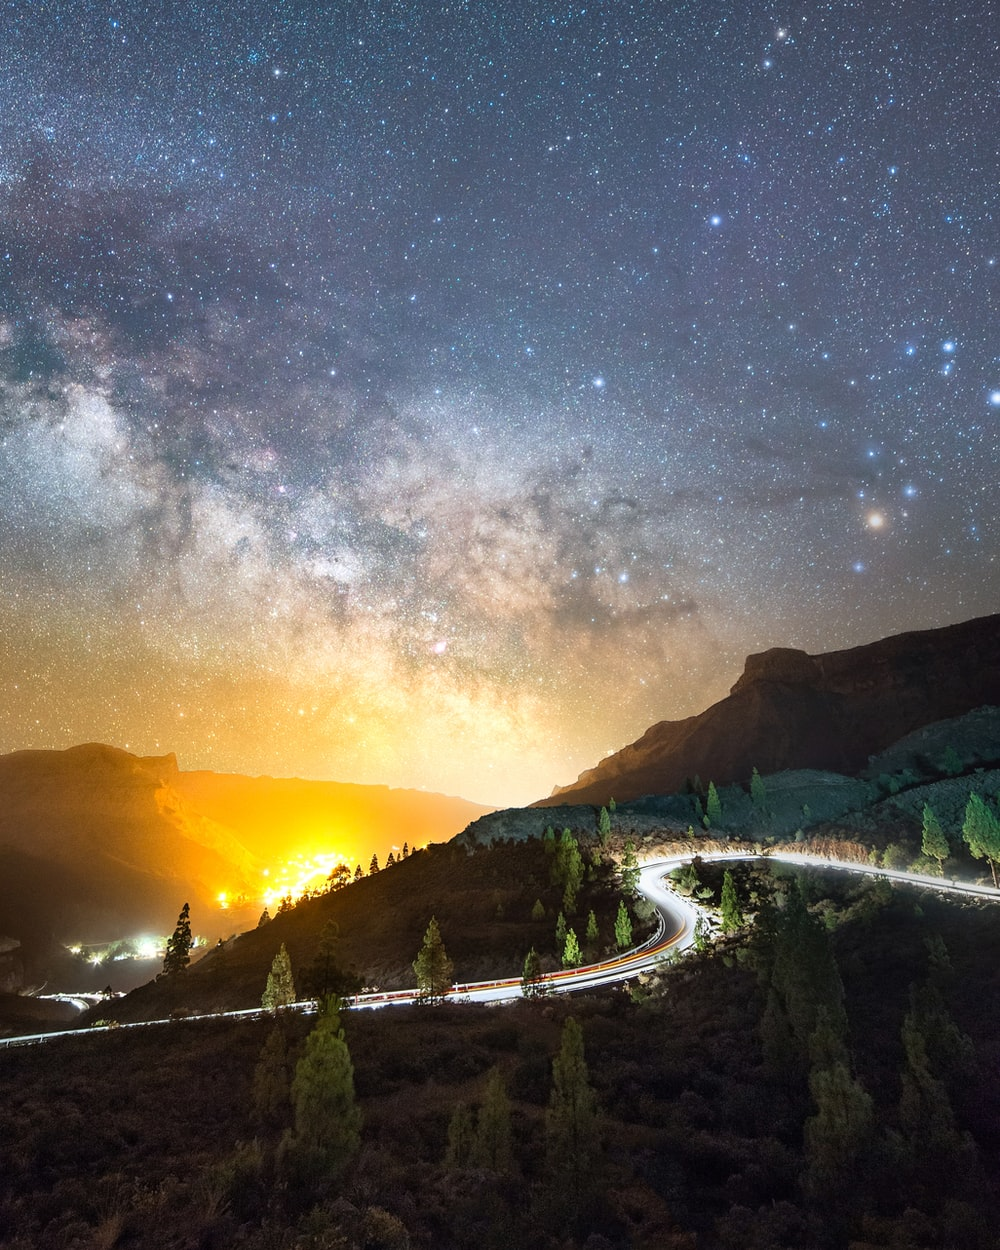 green trees and mountain under starry night